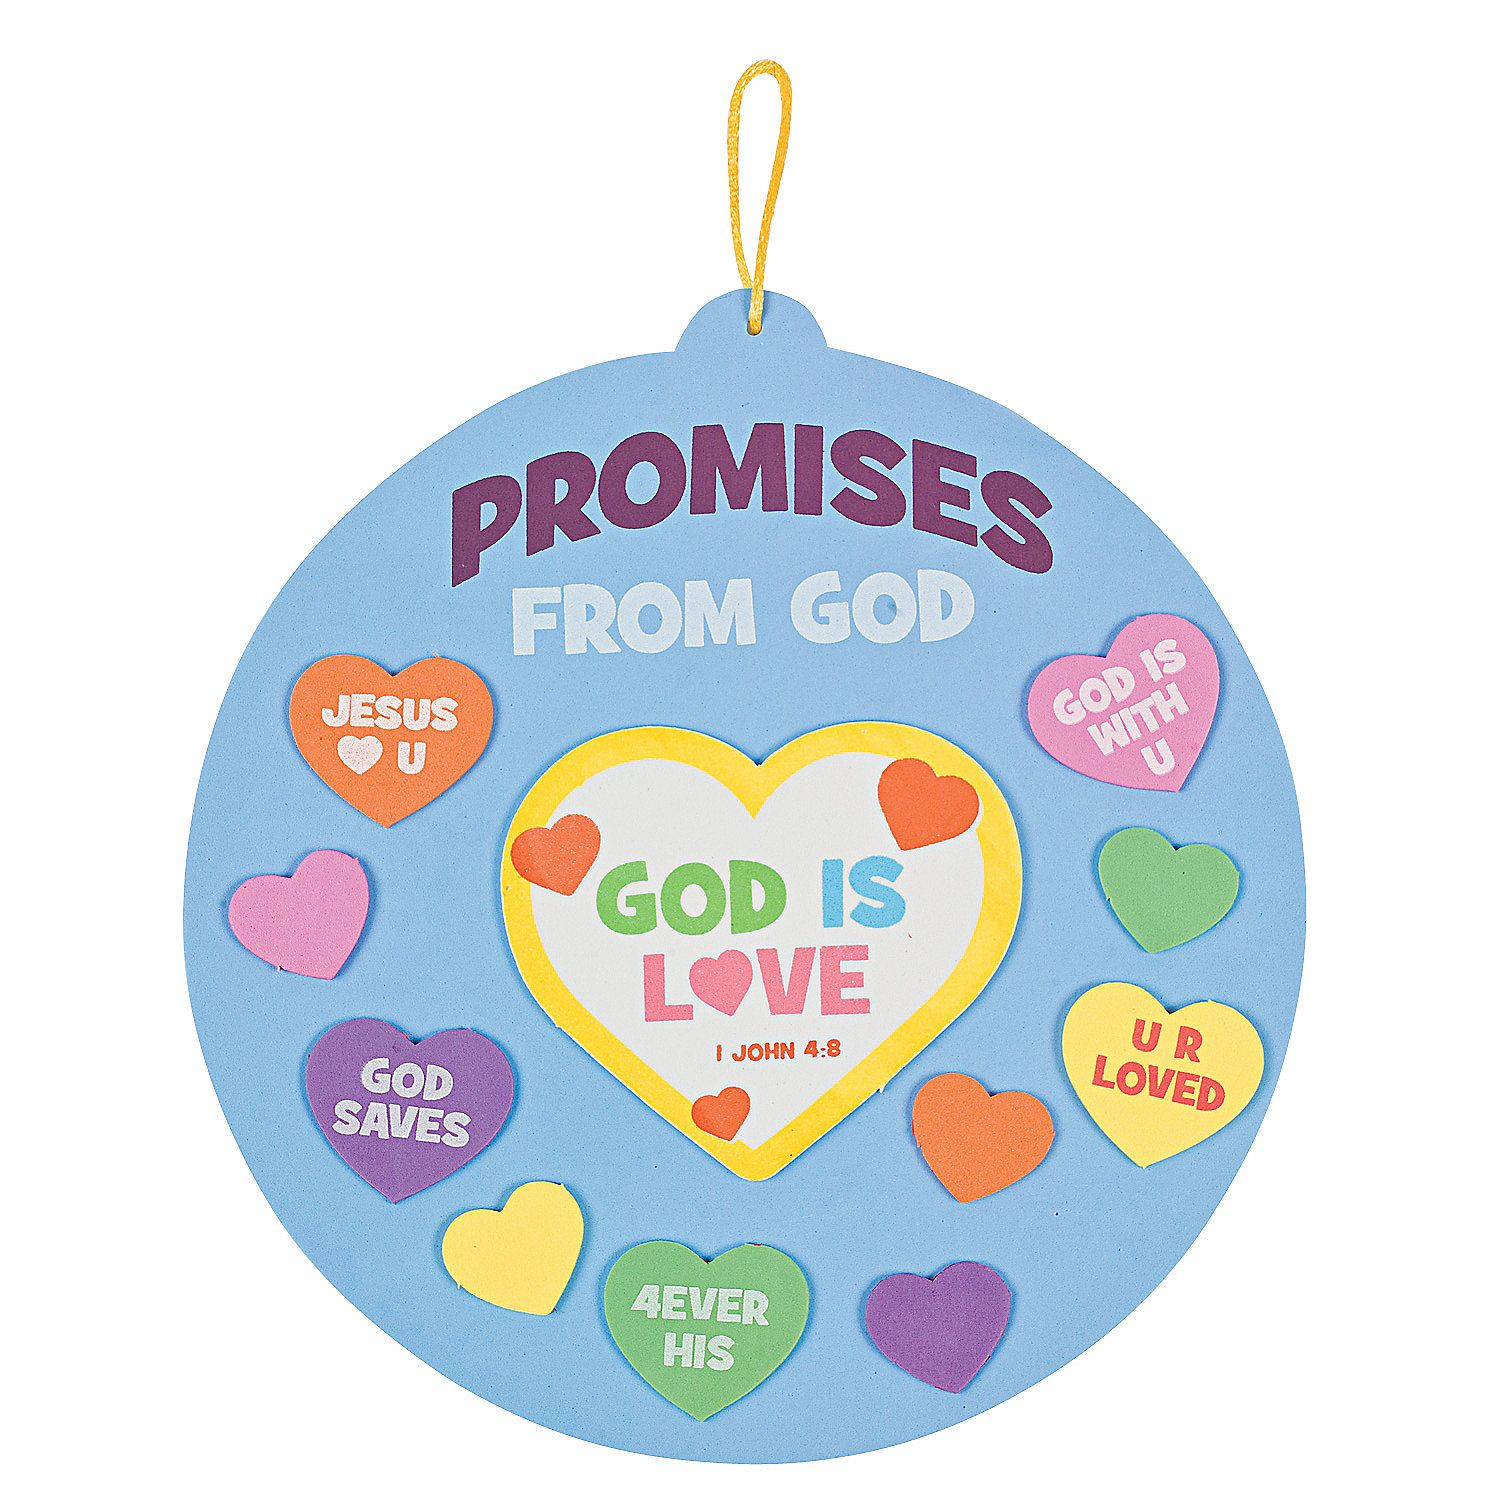 promises from god u201d sign craft kit craft kits craft and sunday